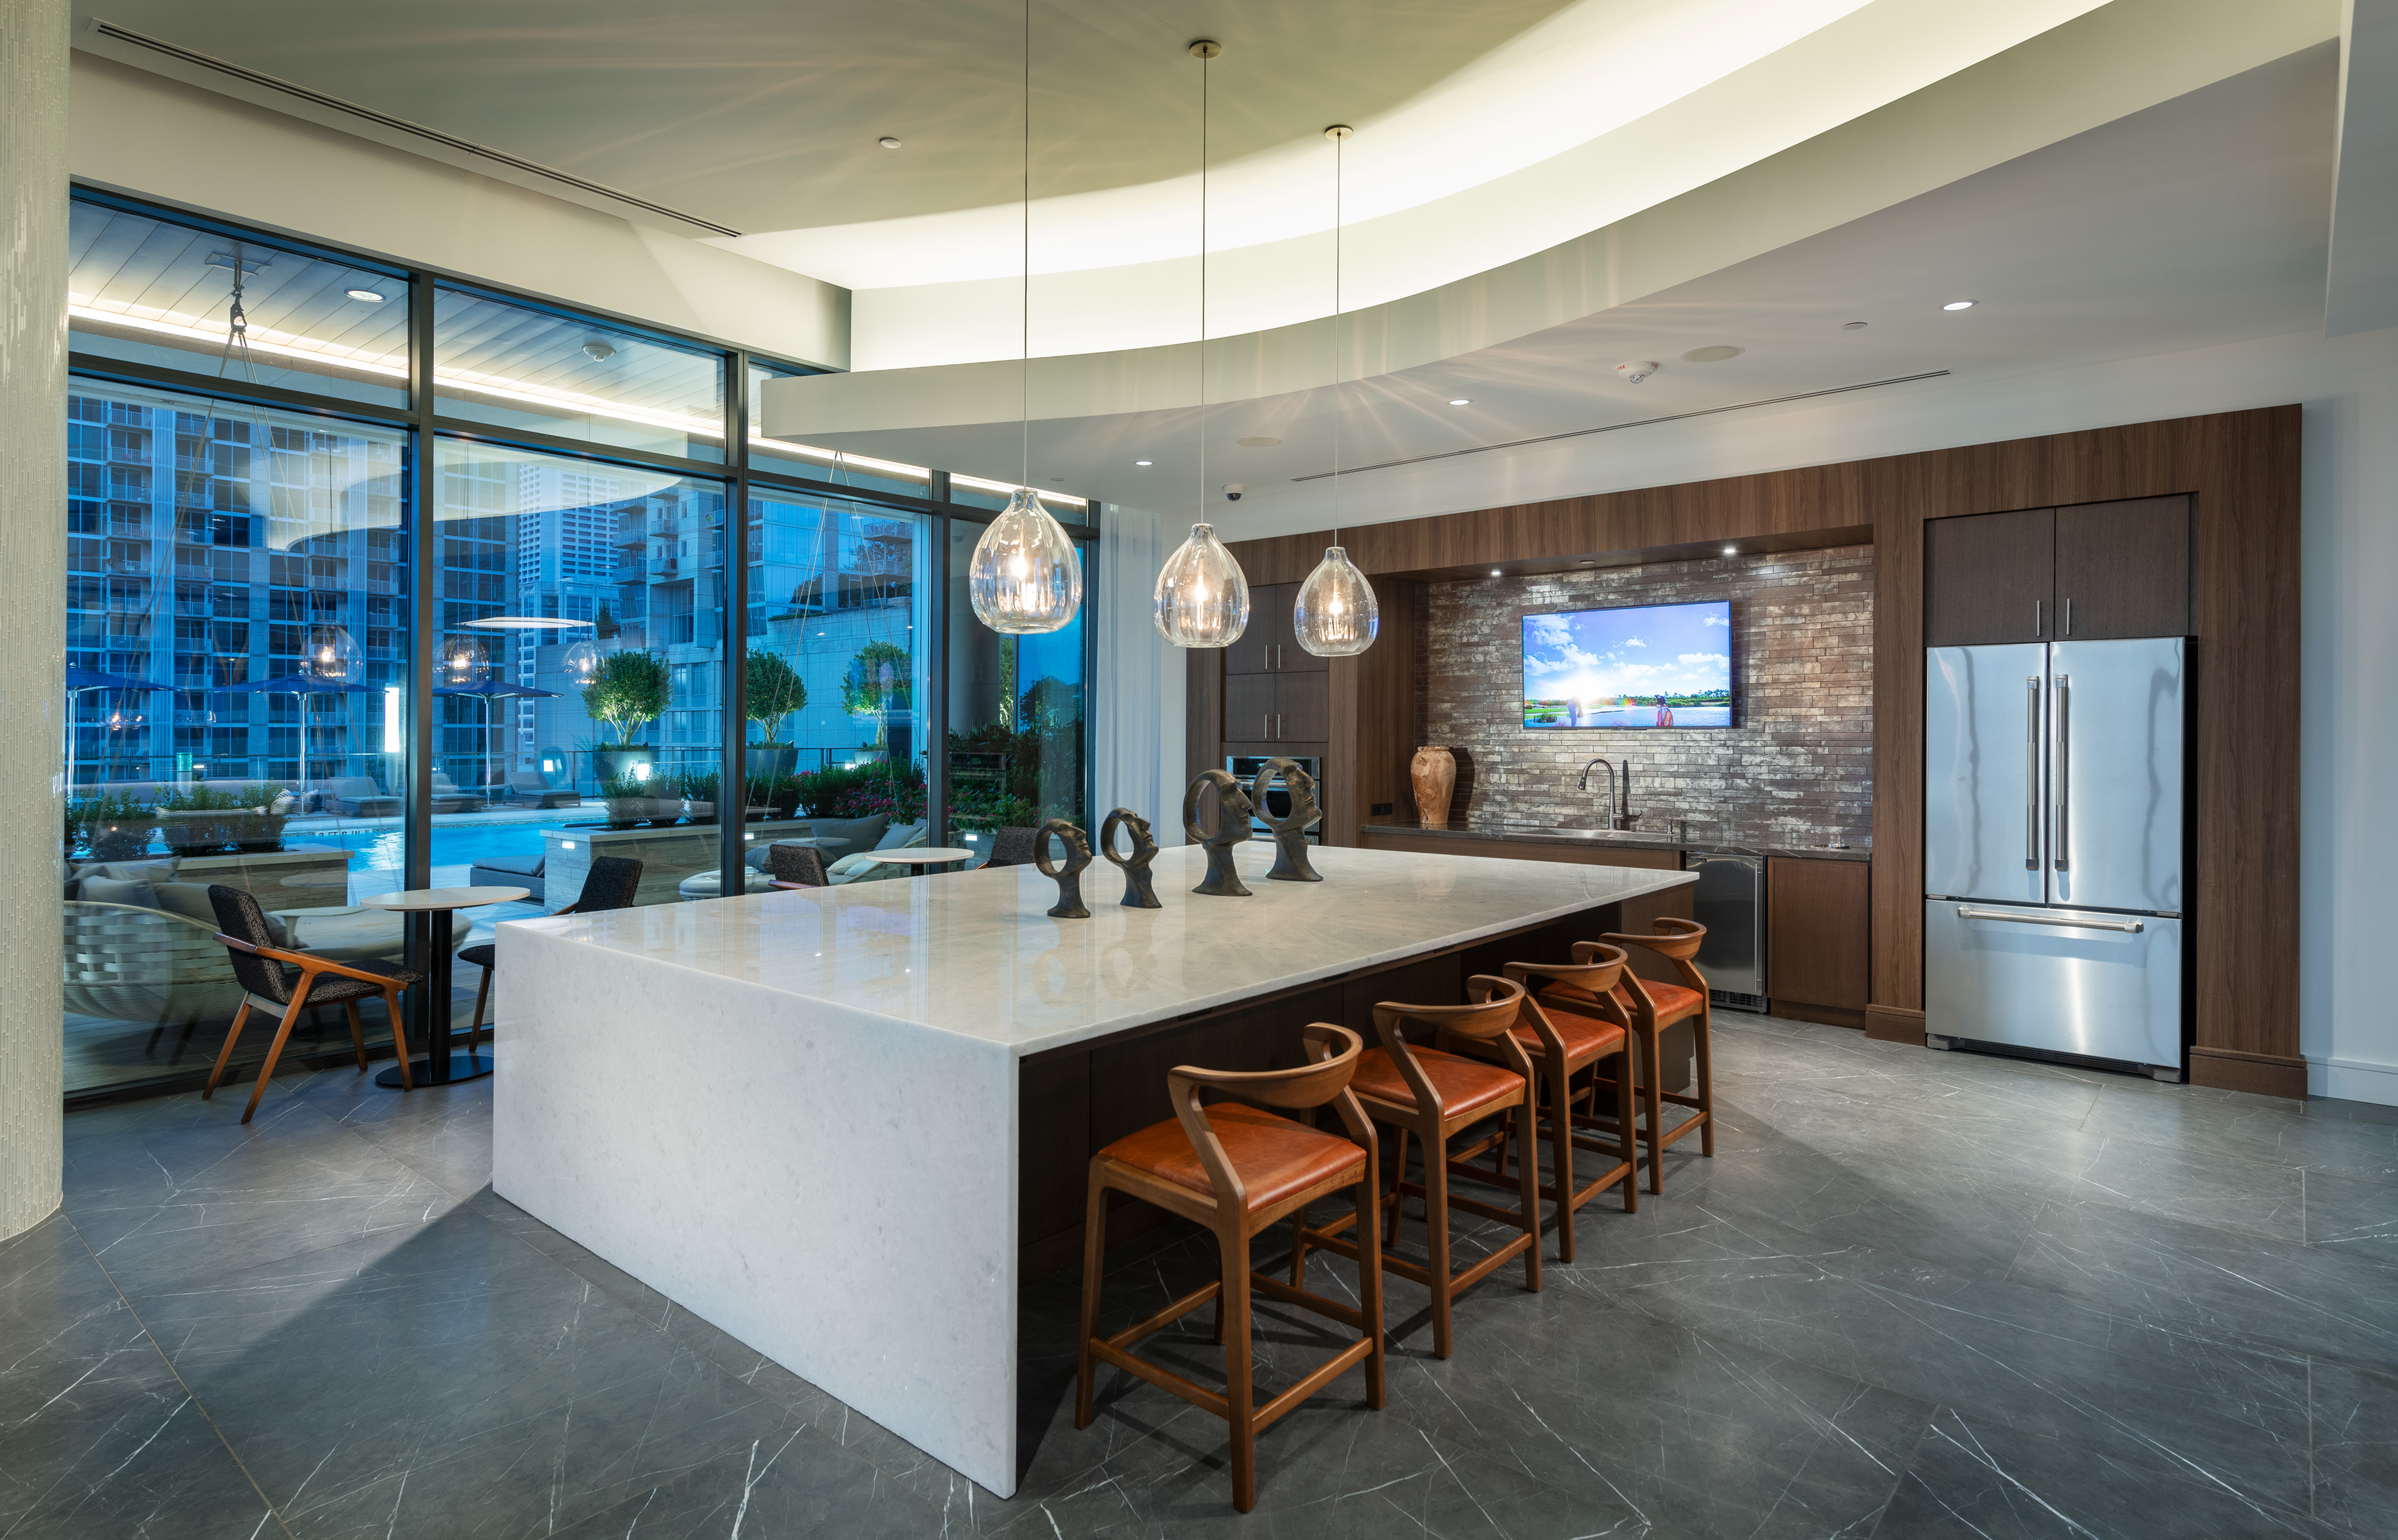 Image of Resident Pantry with Large Island, Full-Service Catering Kitchen and Banquet-Style Seating for Hanover Midtown